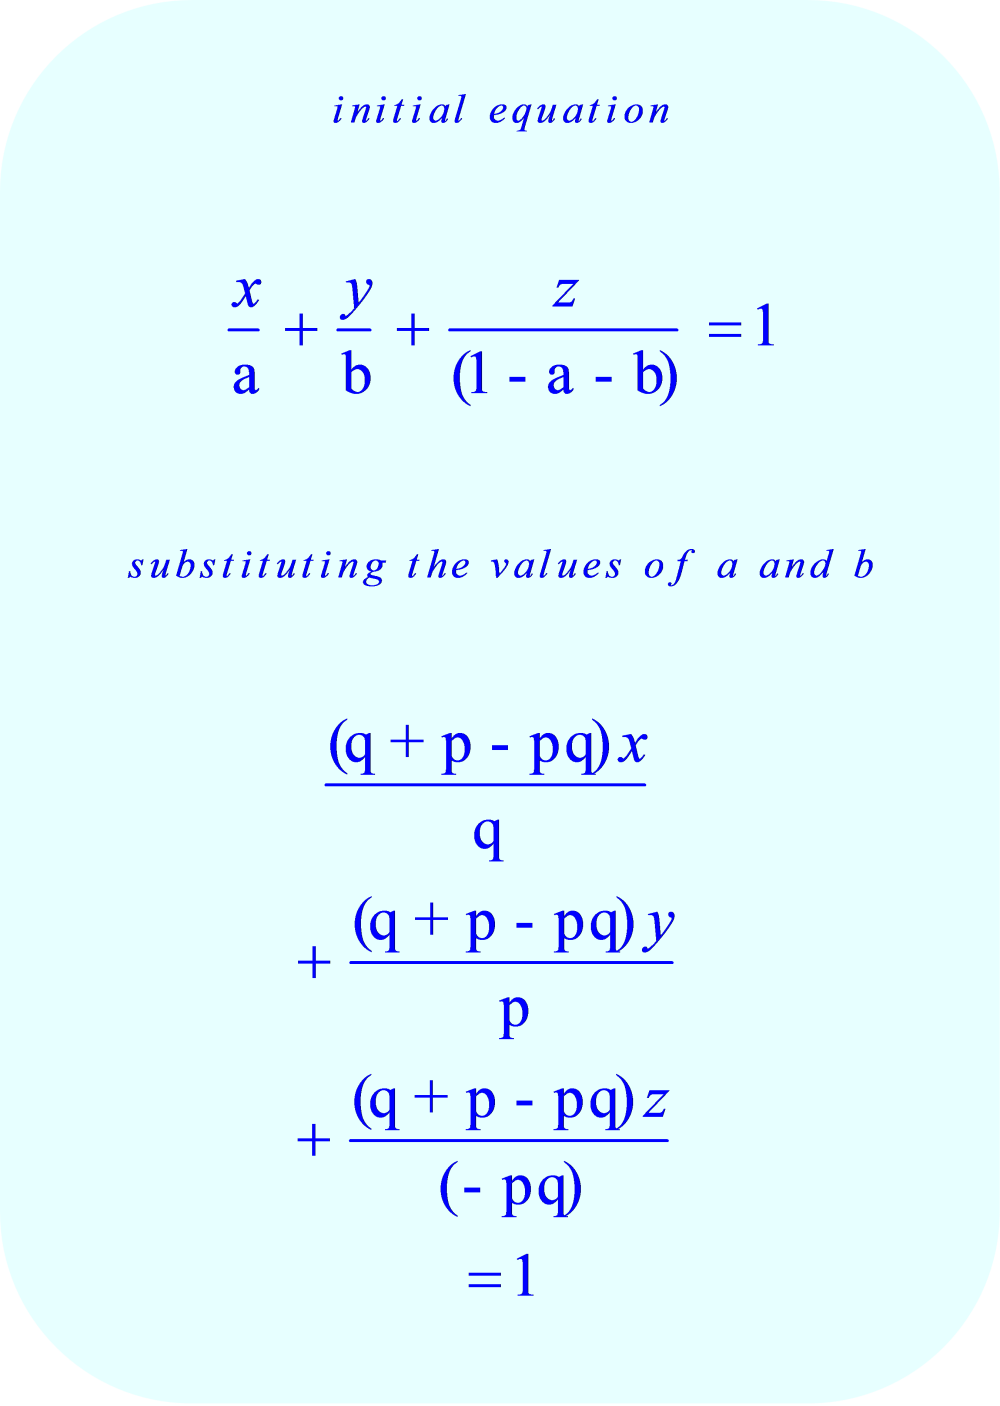 substitute the values of a and b into the equation for the family of planes